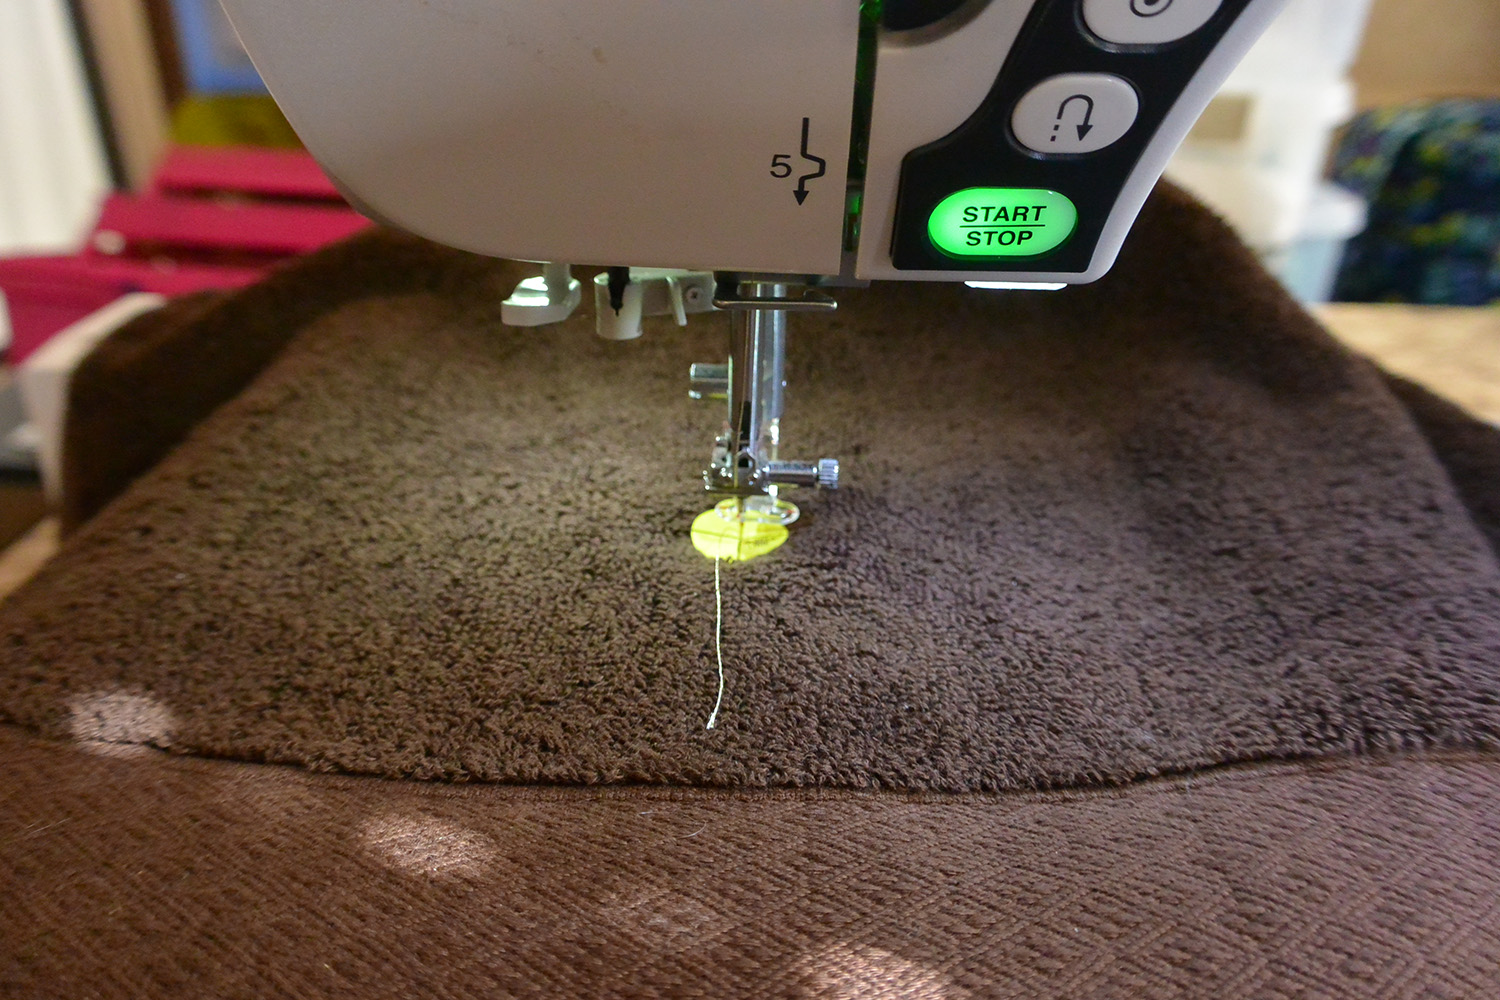 Place A Water Soluble Topping Or Heat N' Gone On The Embroidery Area Use A  Piece Of Floriani Pink Embroidery Tape To Hold